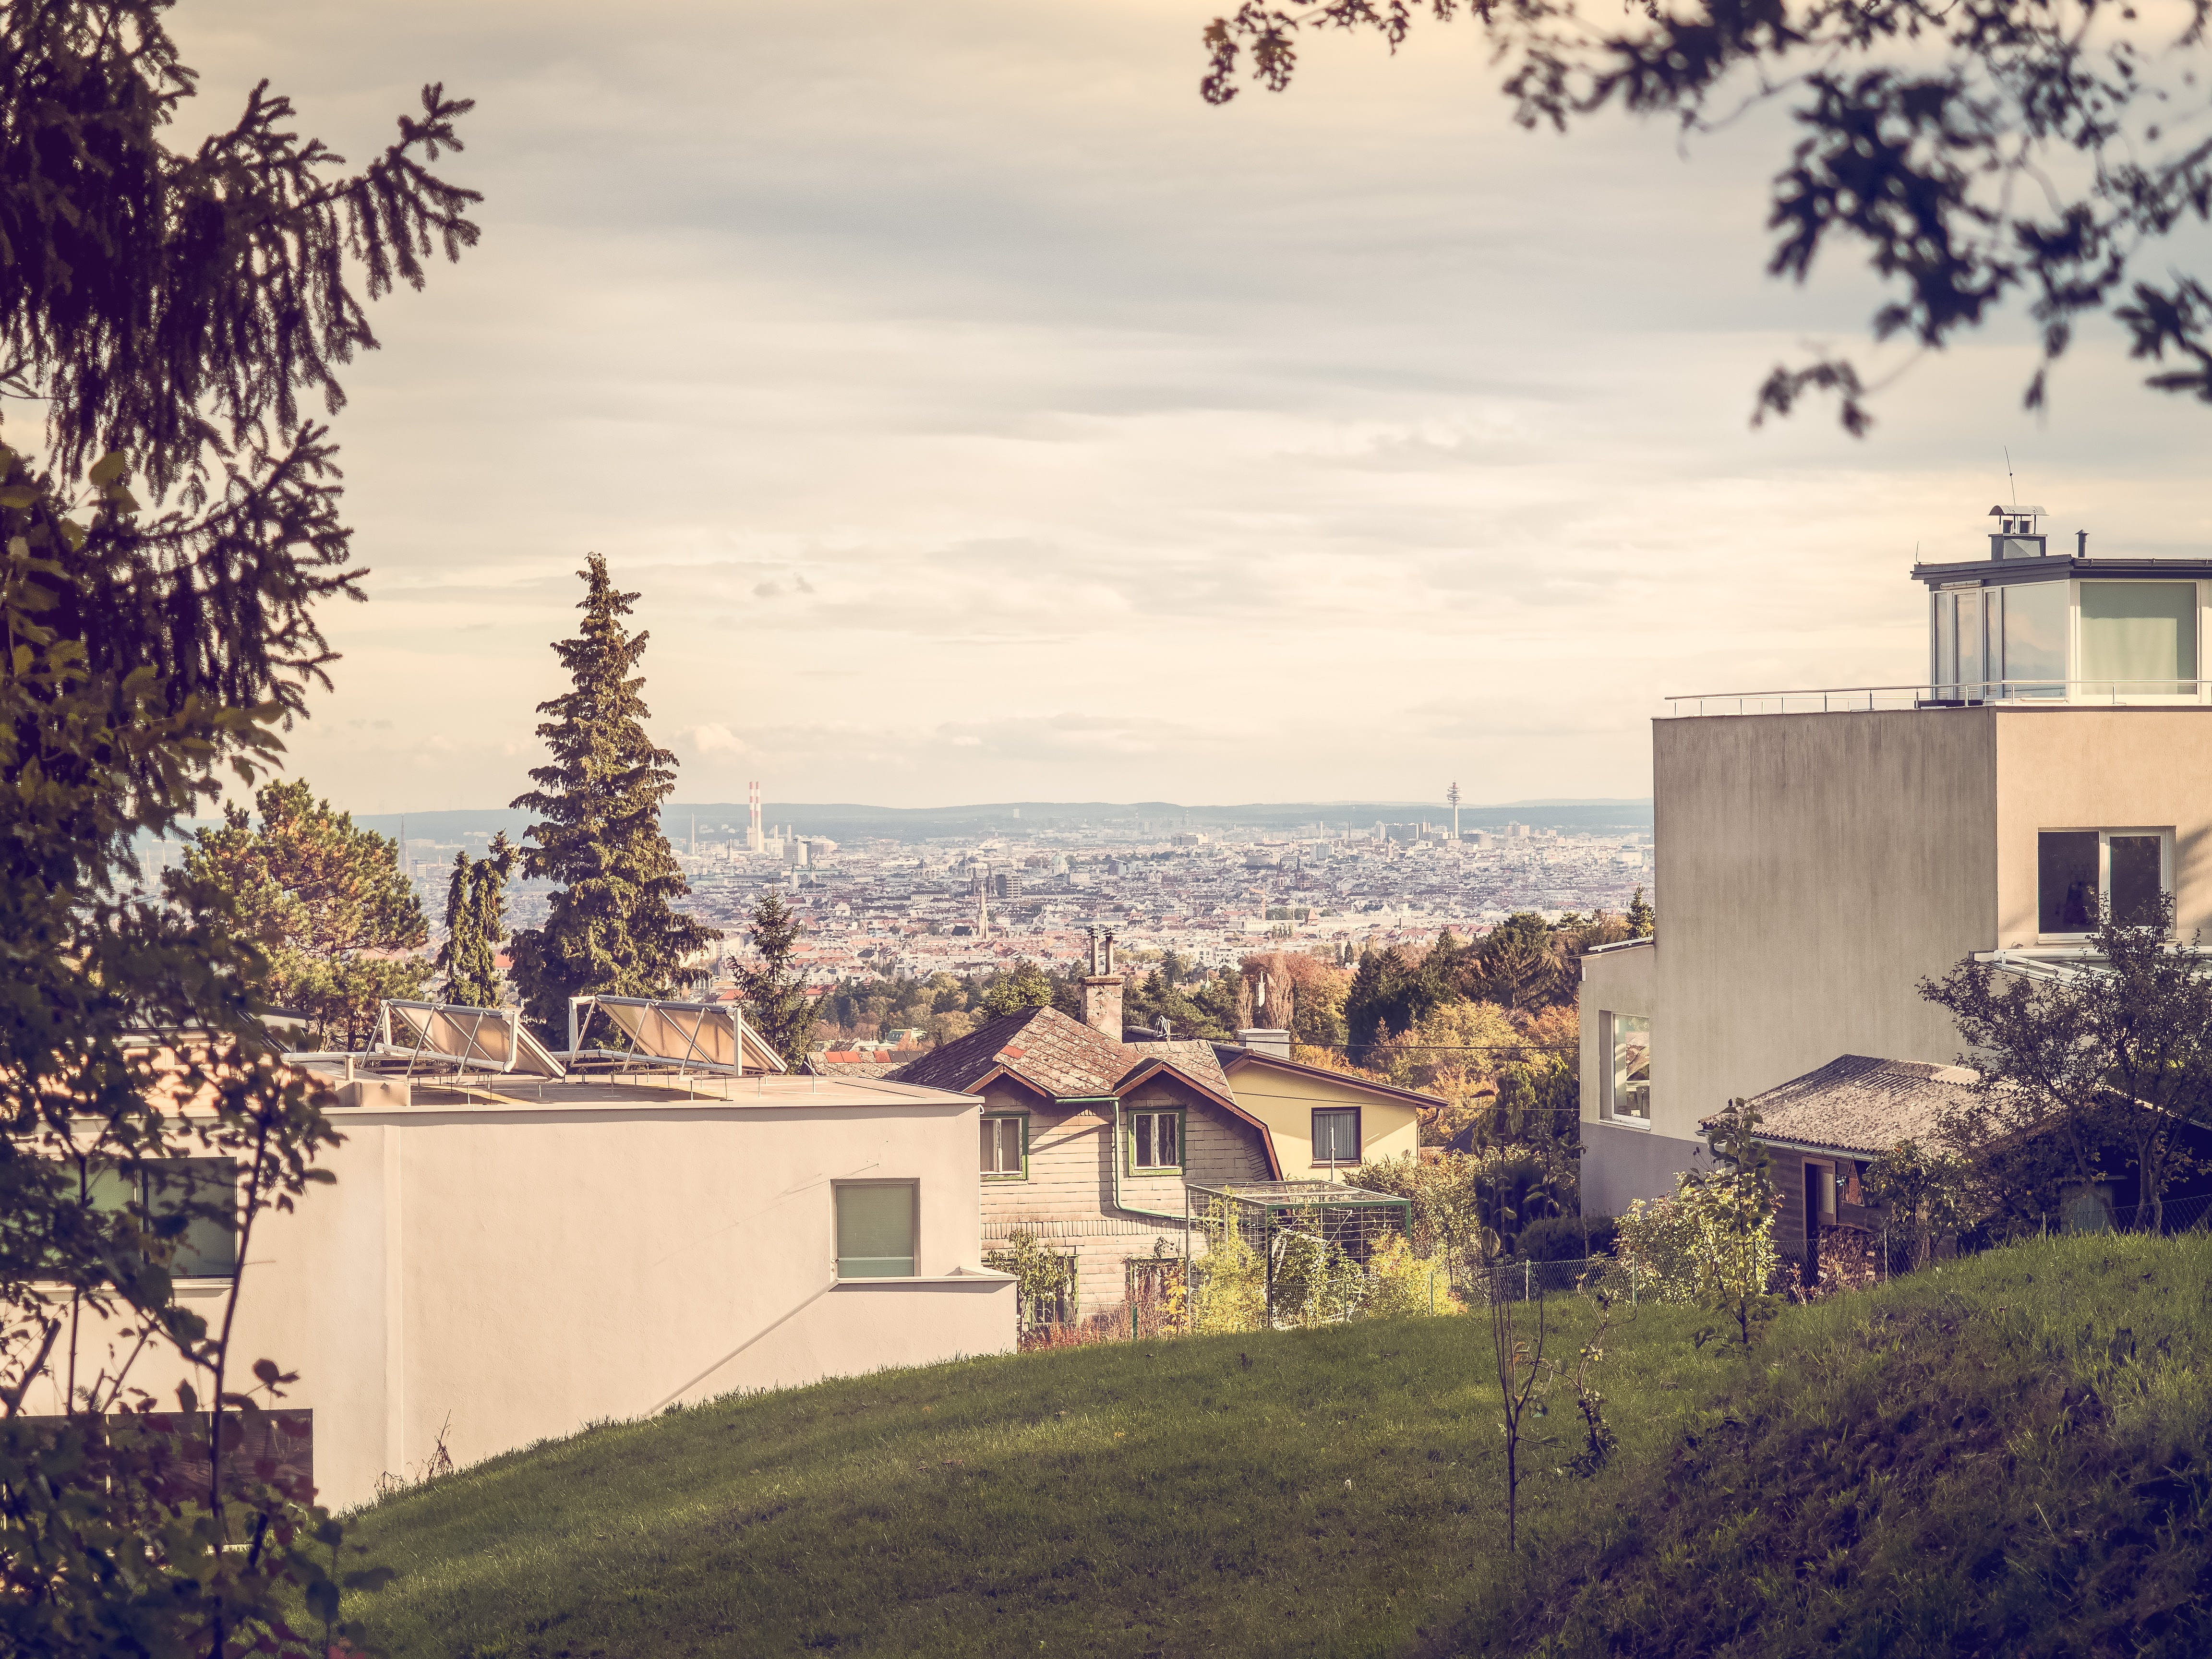 Free stock photo of city, houses, garden, architecture